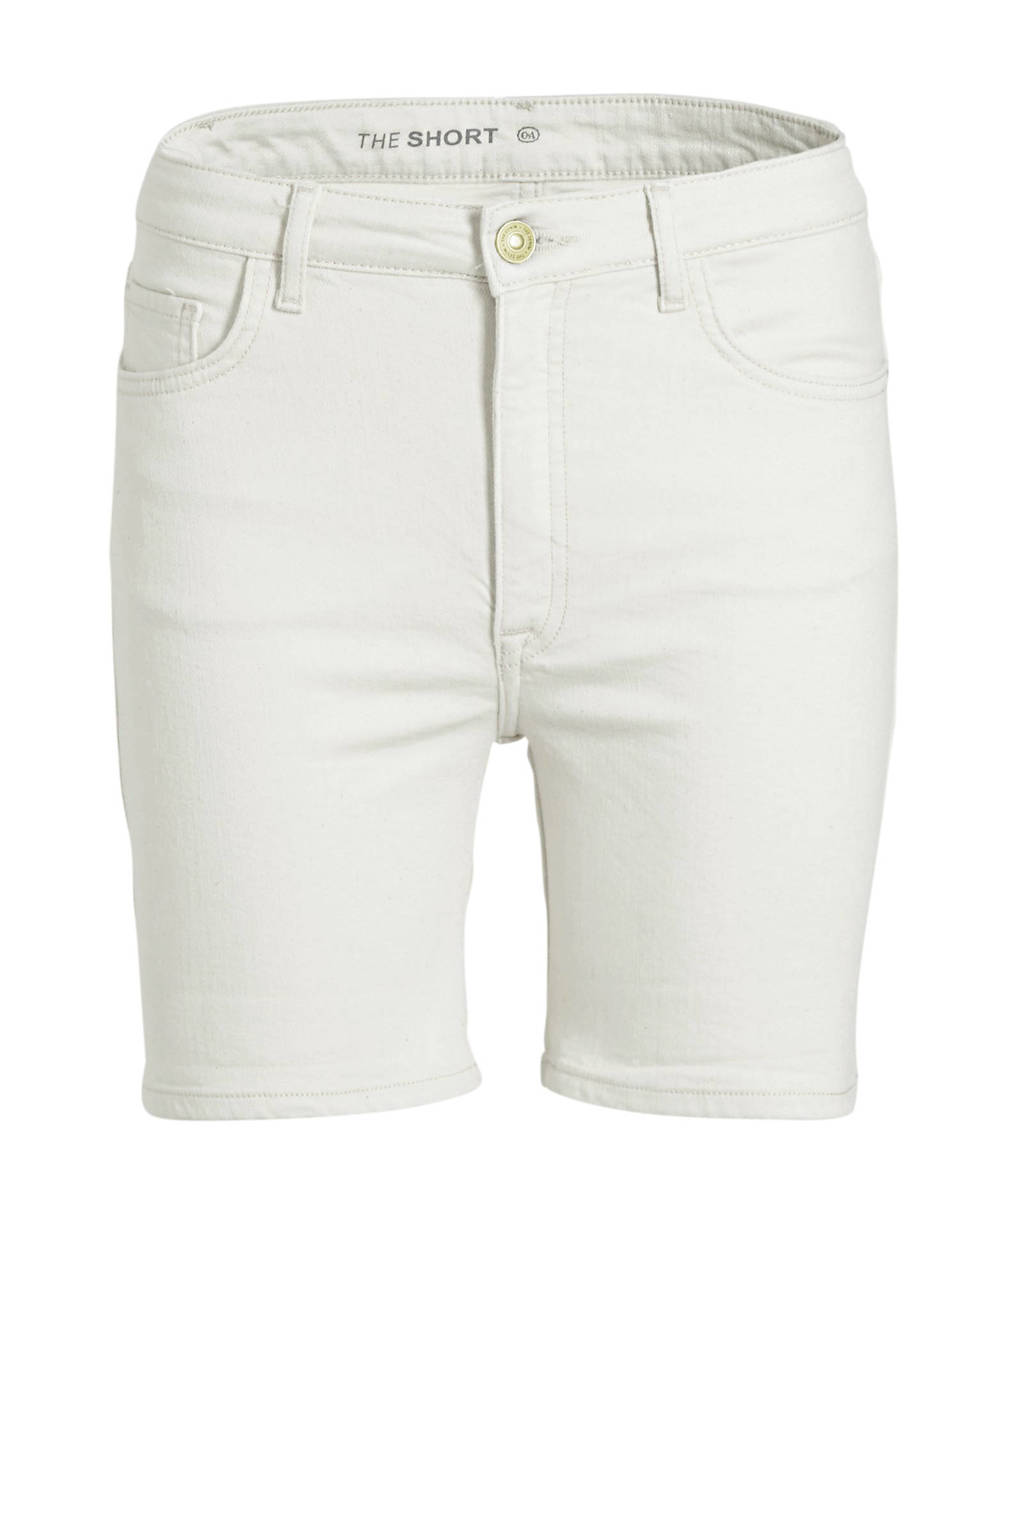 C&A The Denim skinny short wit, Wit